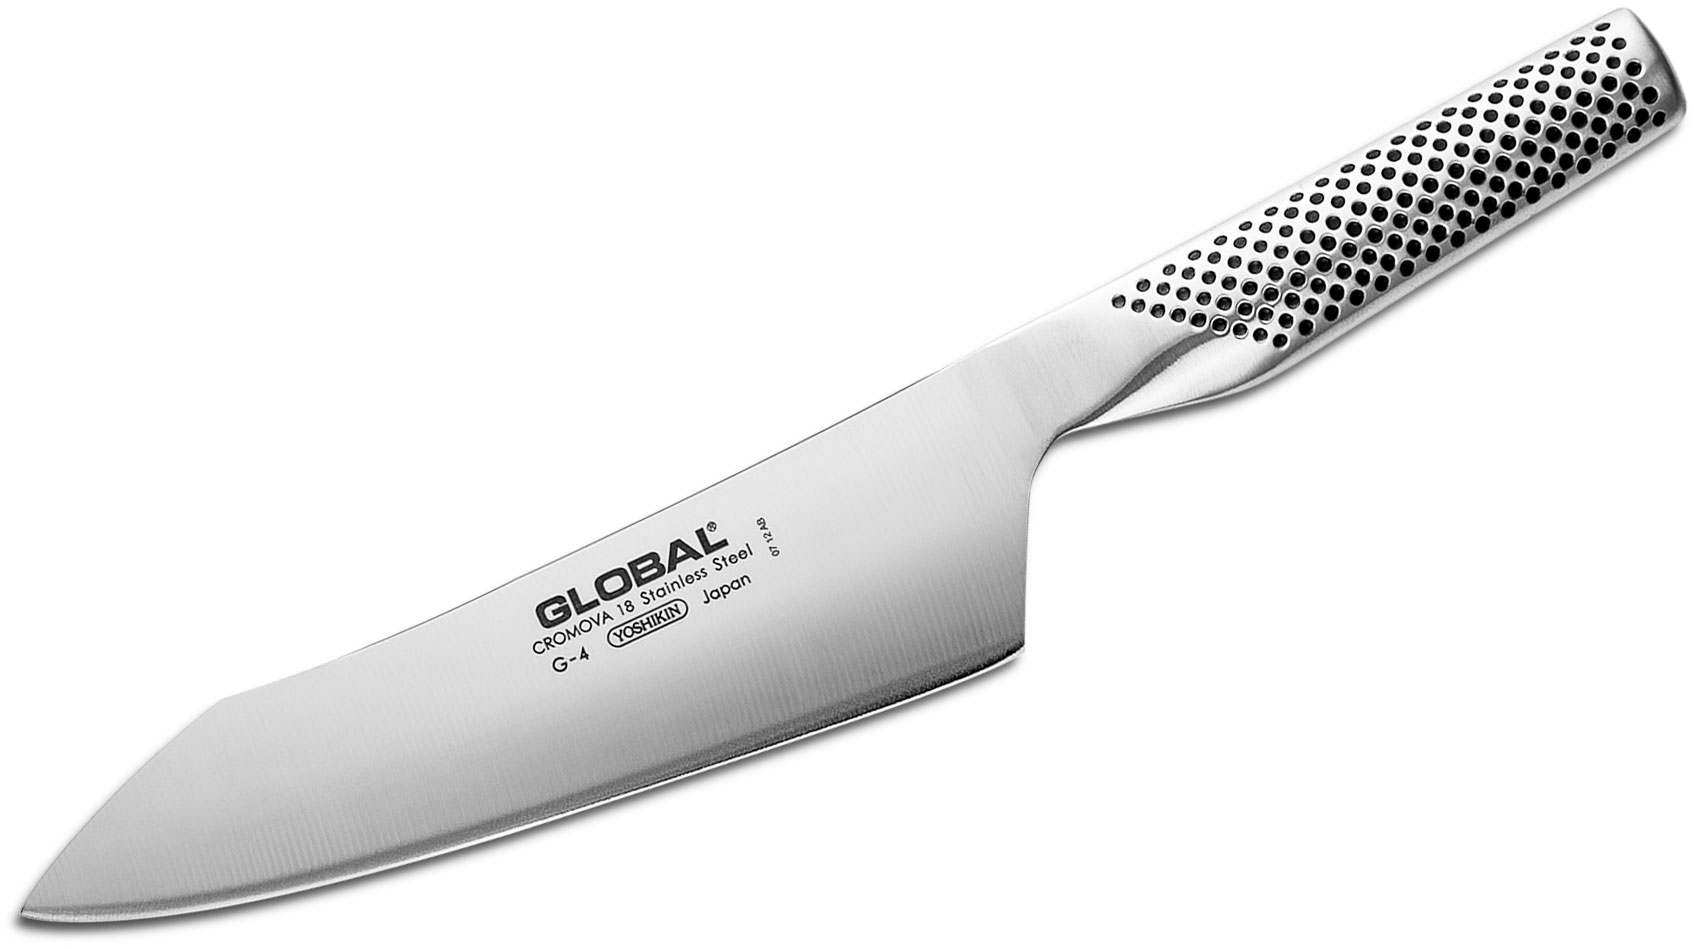 Global G-4 Classic 7 inch Oriental Chef's Knife